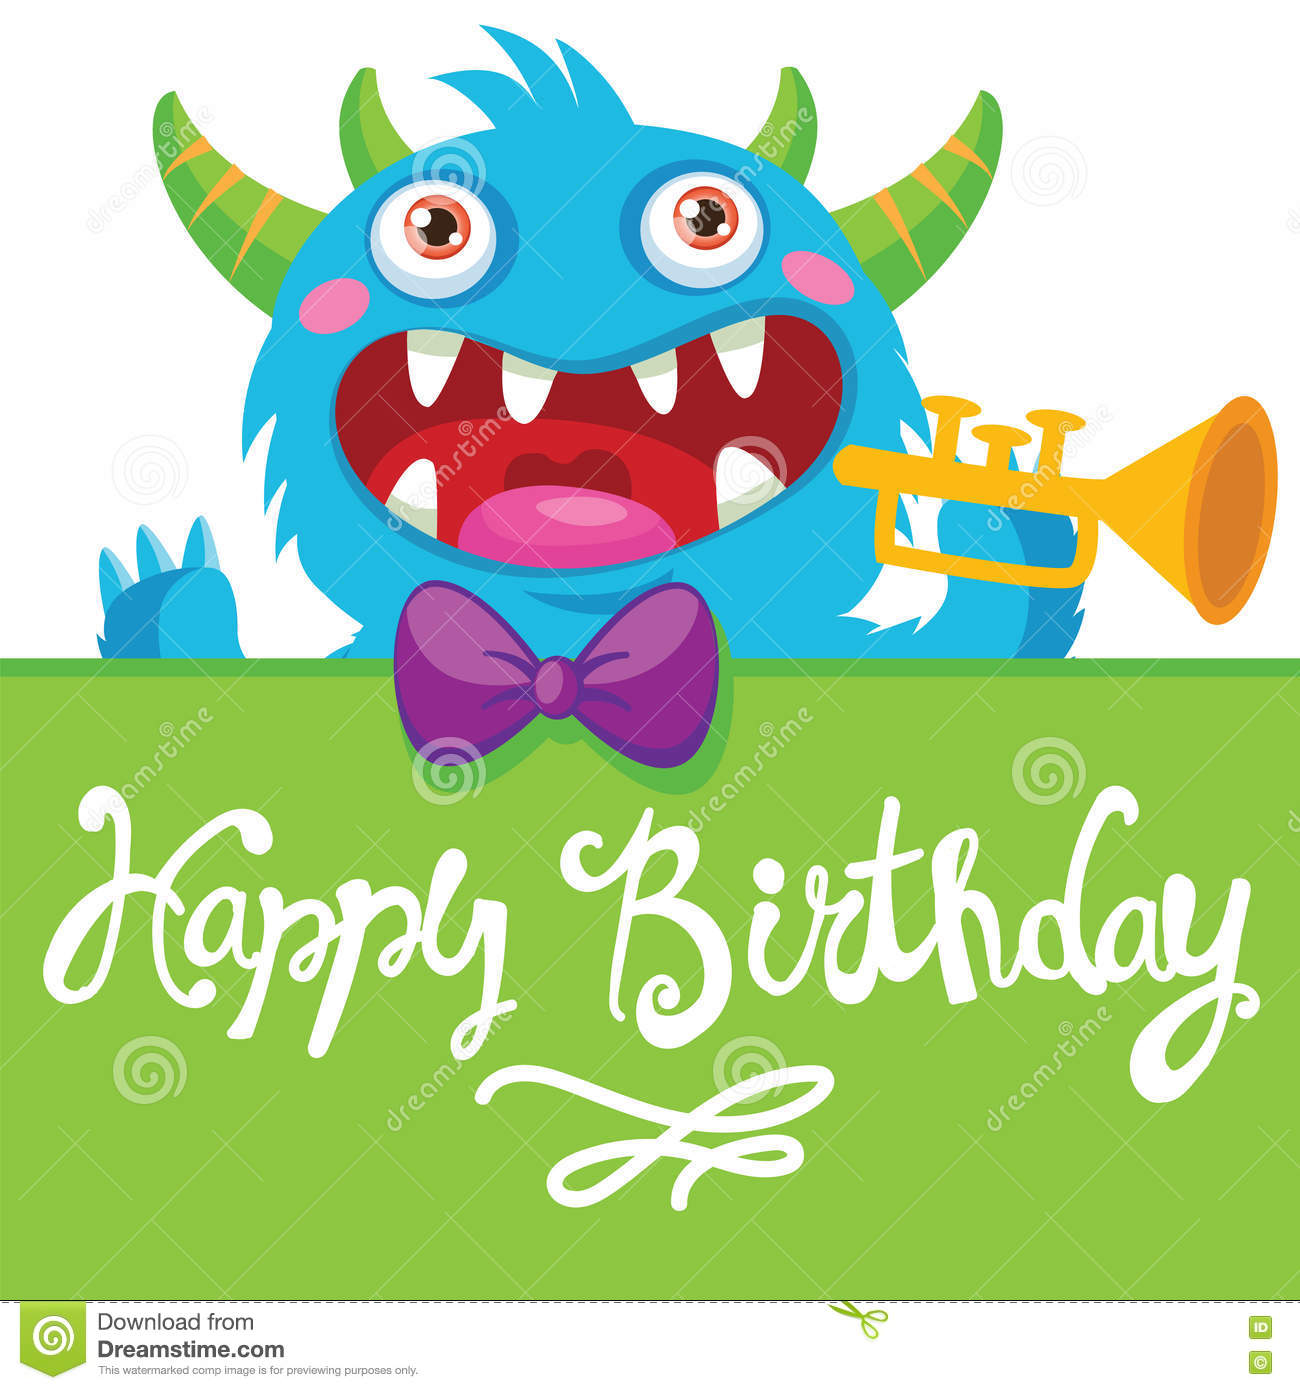 Cartoon Monster Vector Illustration Funny Birthday Greeting Card Theme Pocket Pipes Noise